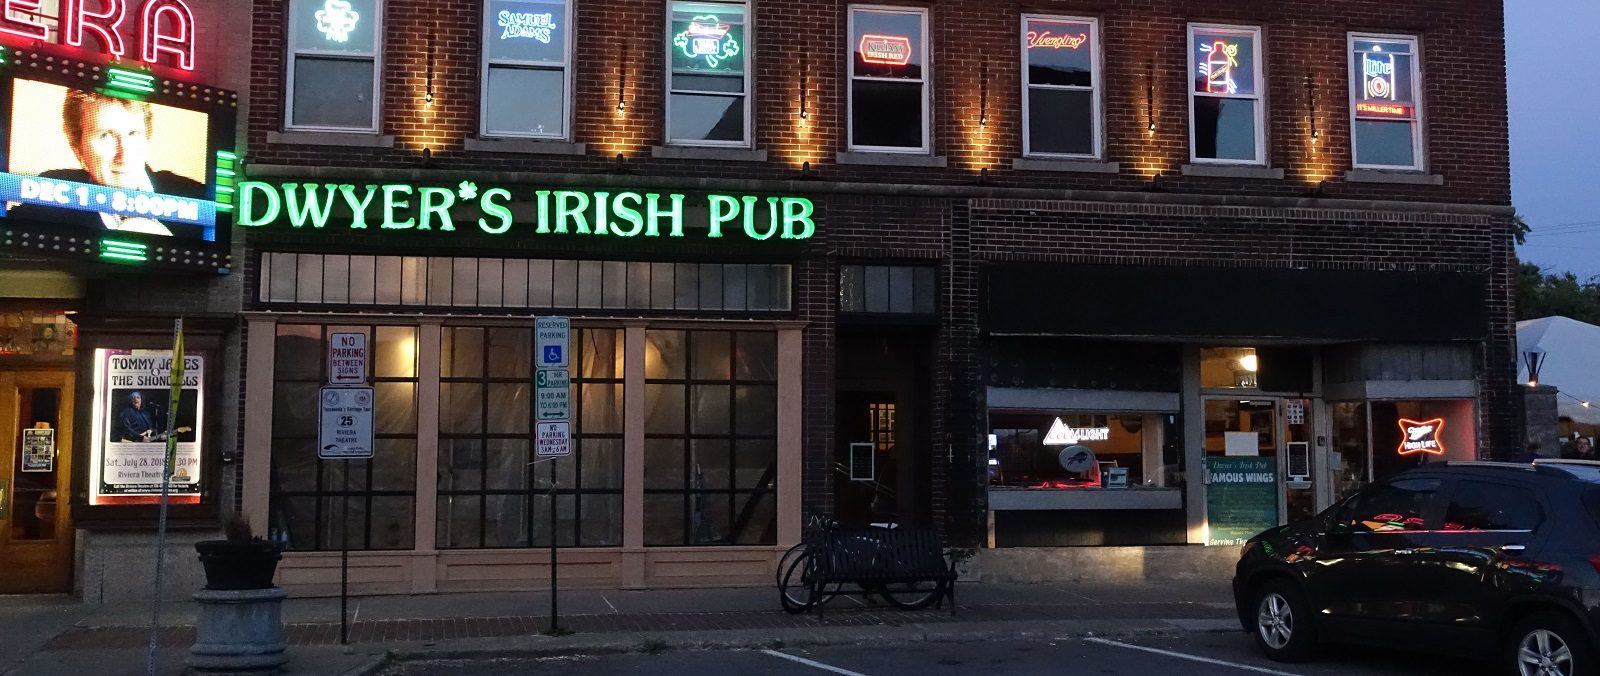 Dwyer's, a fitting spot to spend St. Patrick's Day, is also known for its wings. (John Hickey/Buffalo News file photo)